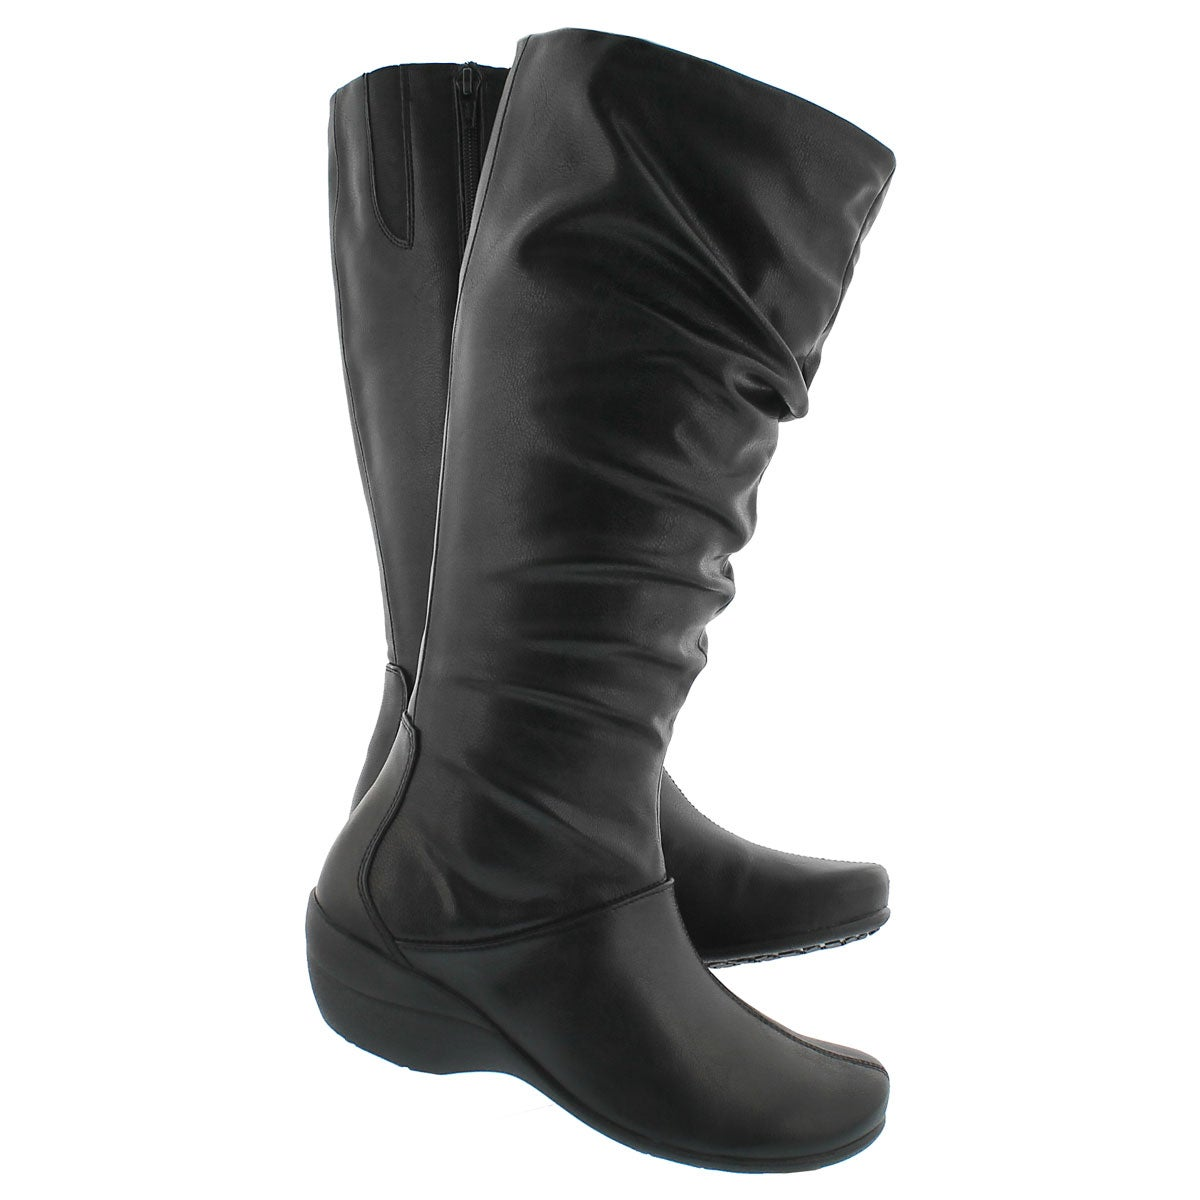 Lds Iva Kana IIV blk tall boot